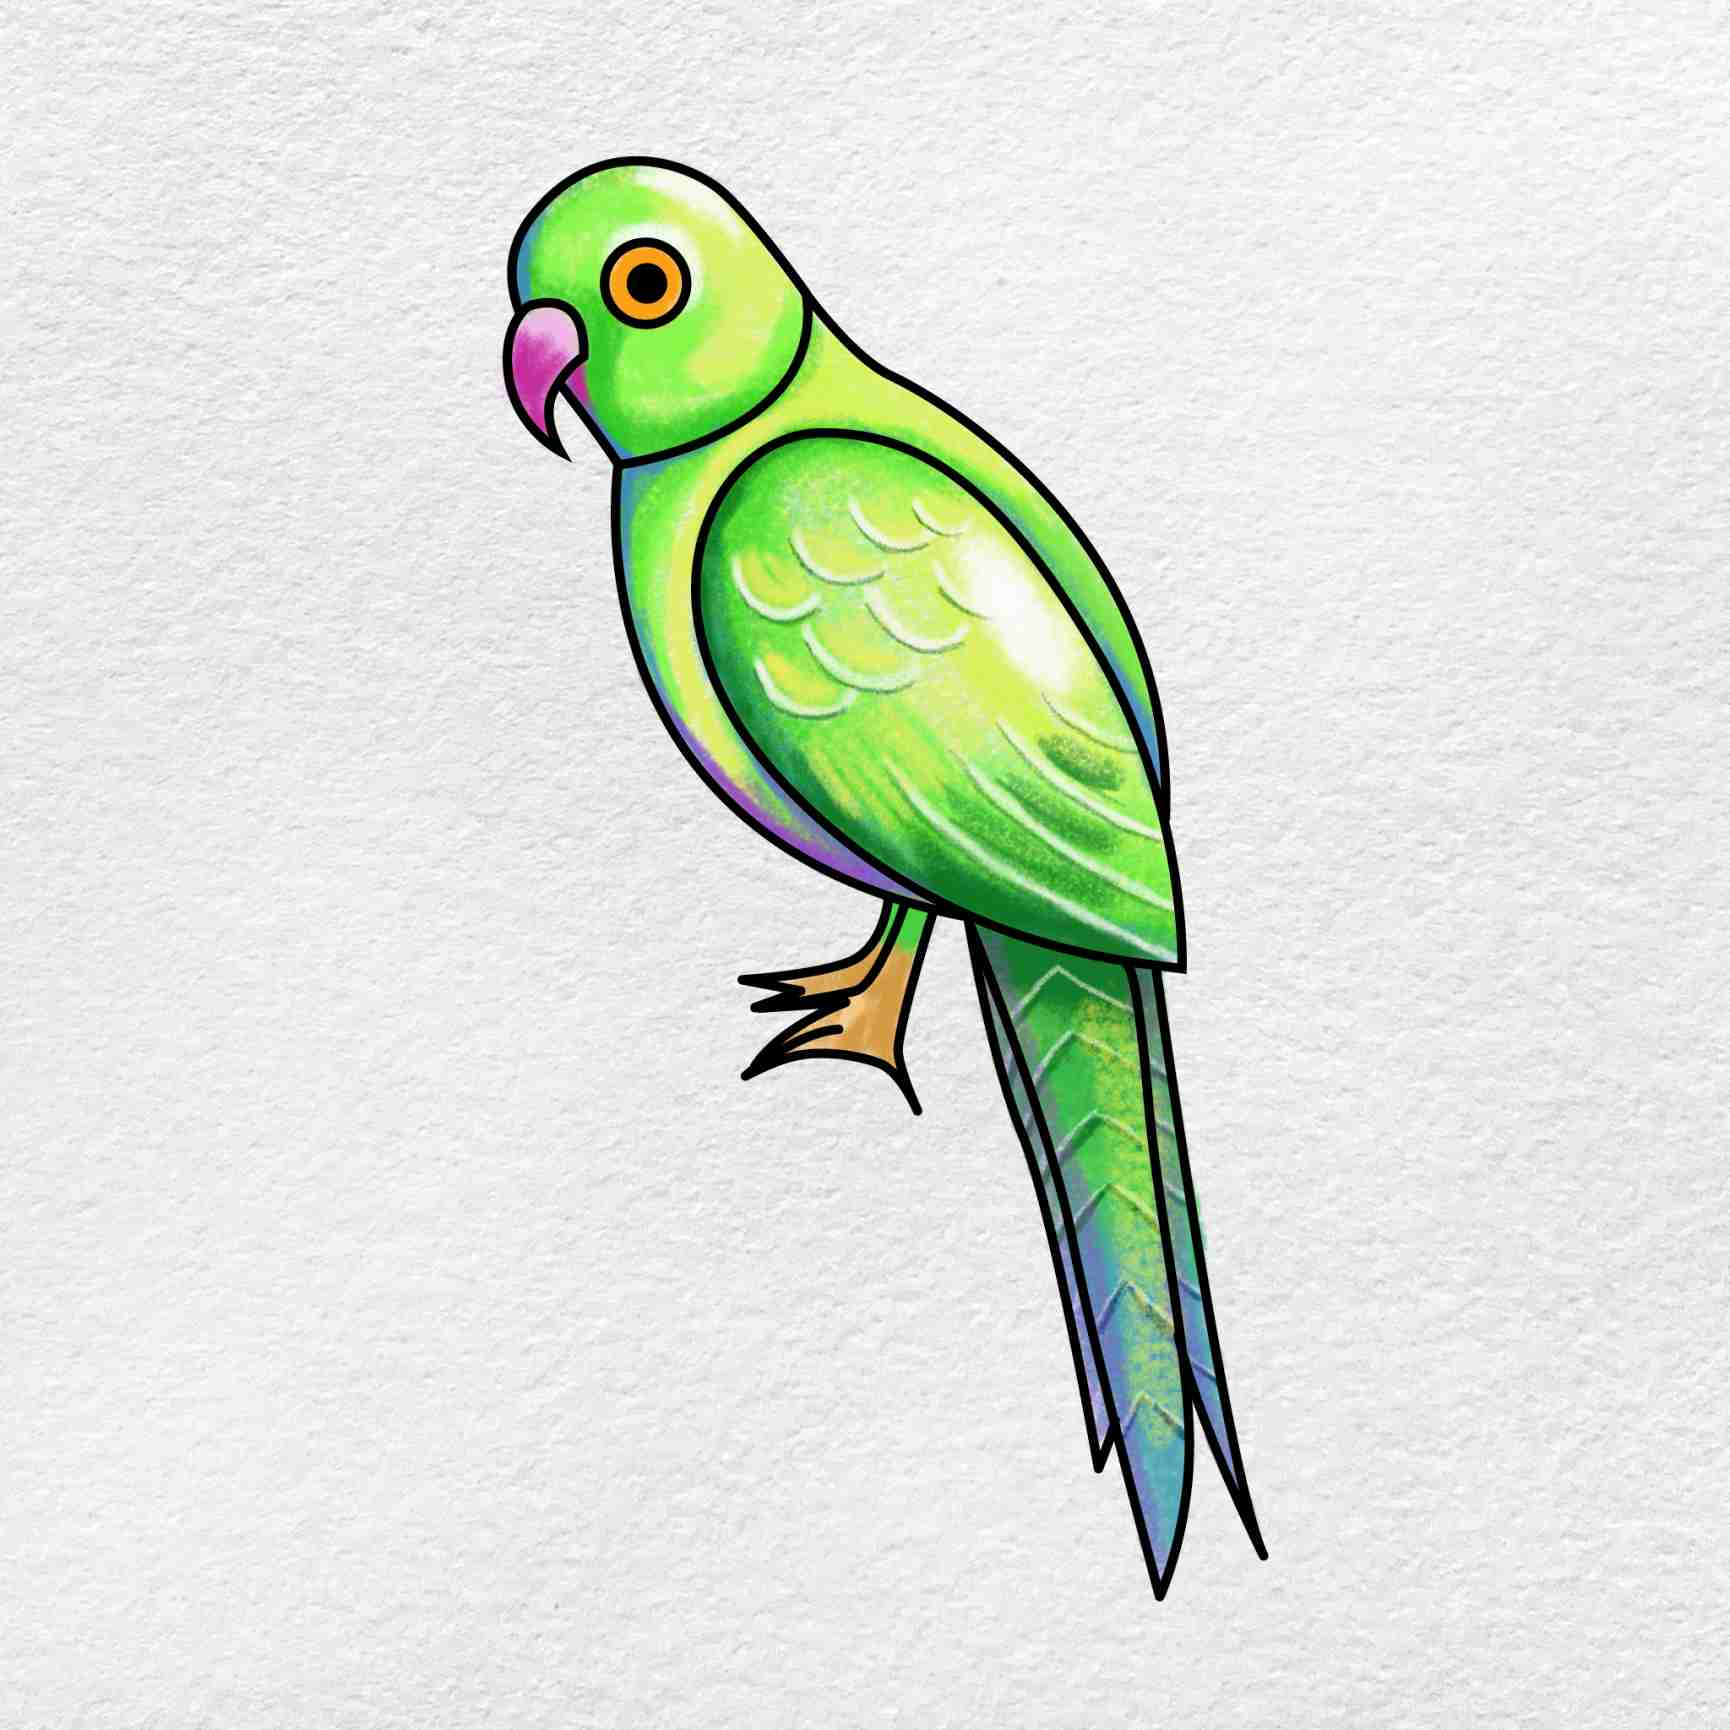 How To Draw A Parrot: Step 6